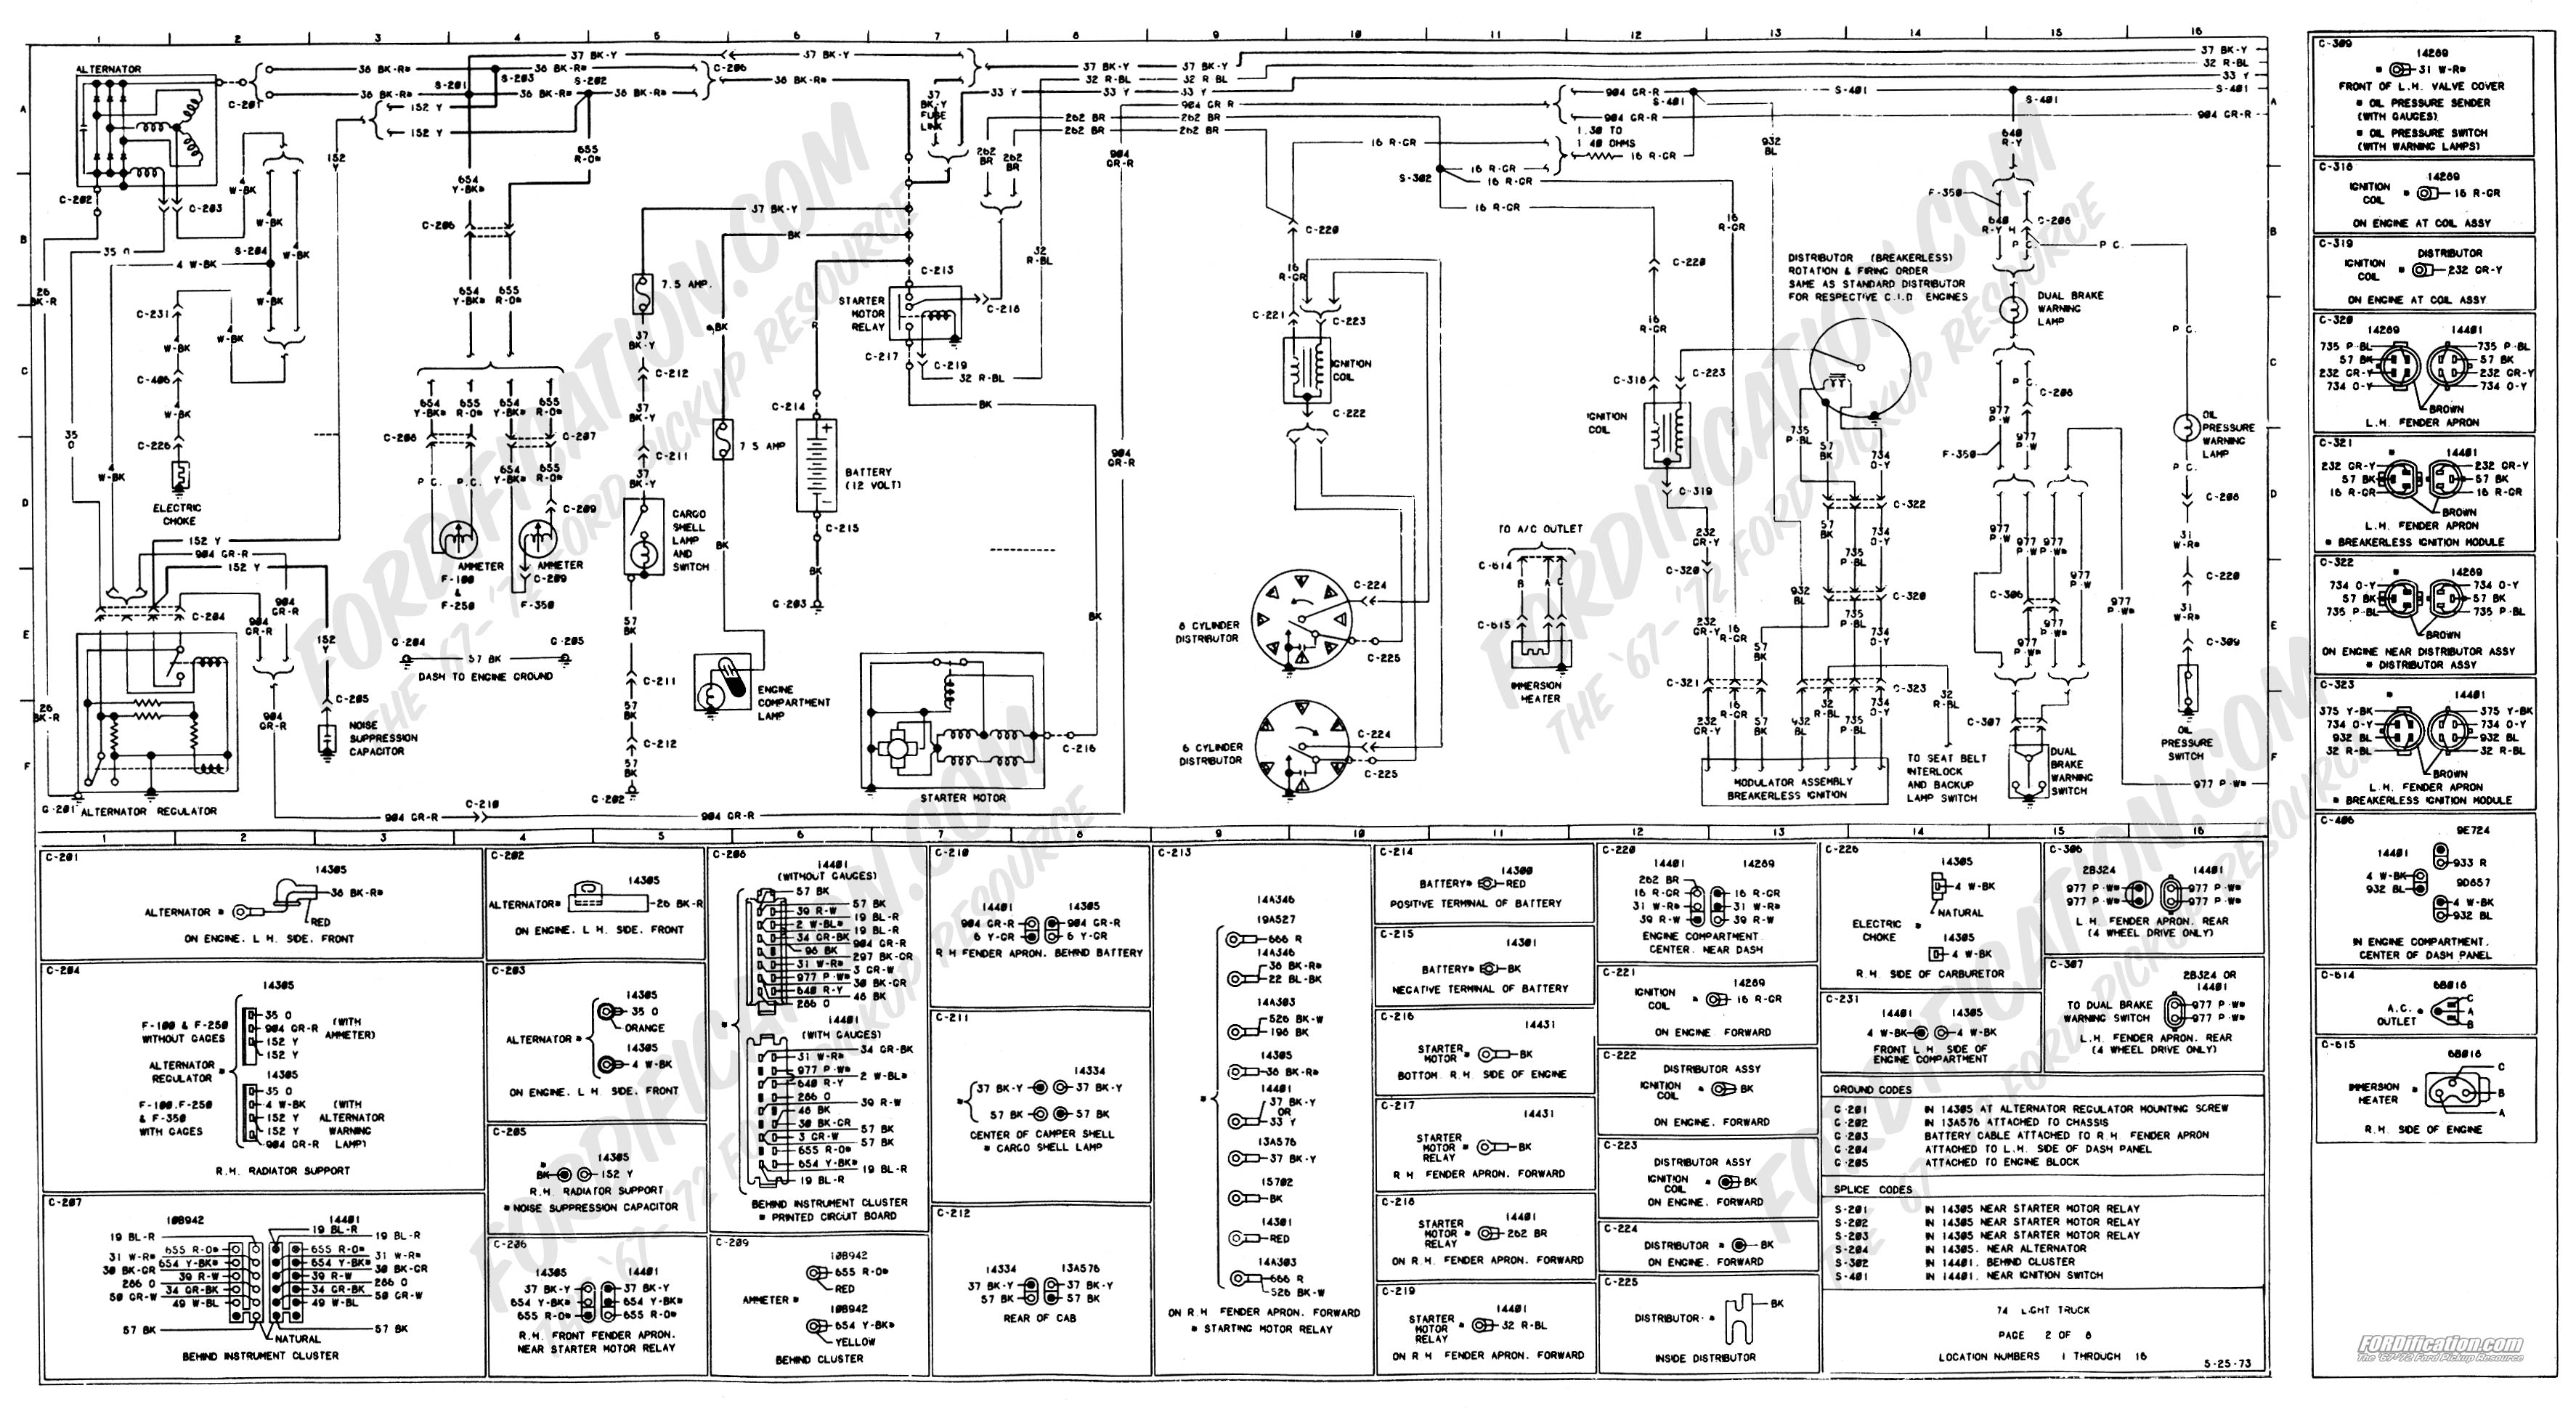 1973 1979 ford truck wiring diagrams schematics fordification net rh fordification net 2001 Ford Truck Wiring Diagrams 1992 Ford E350 Wiring Schematics